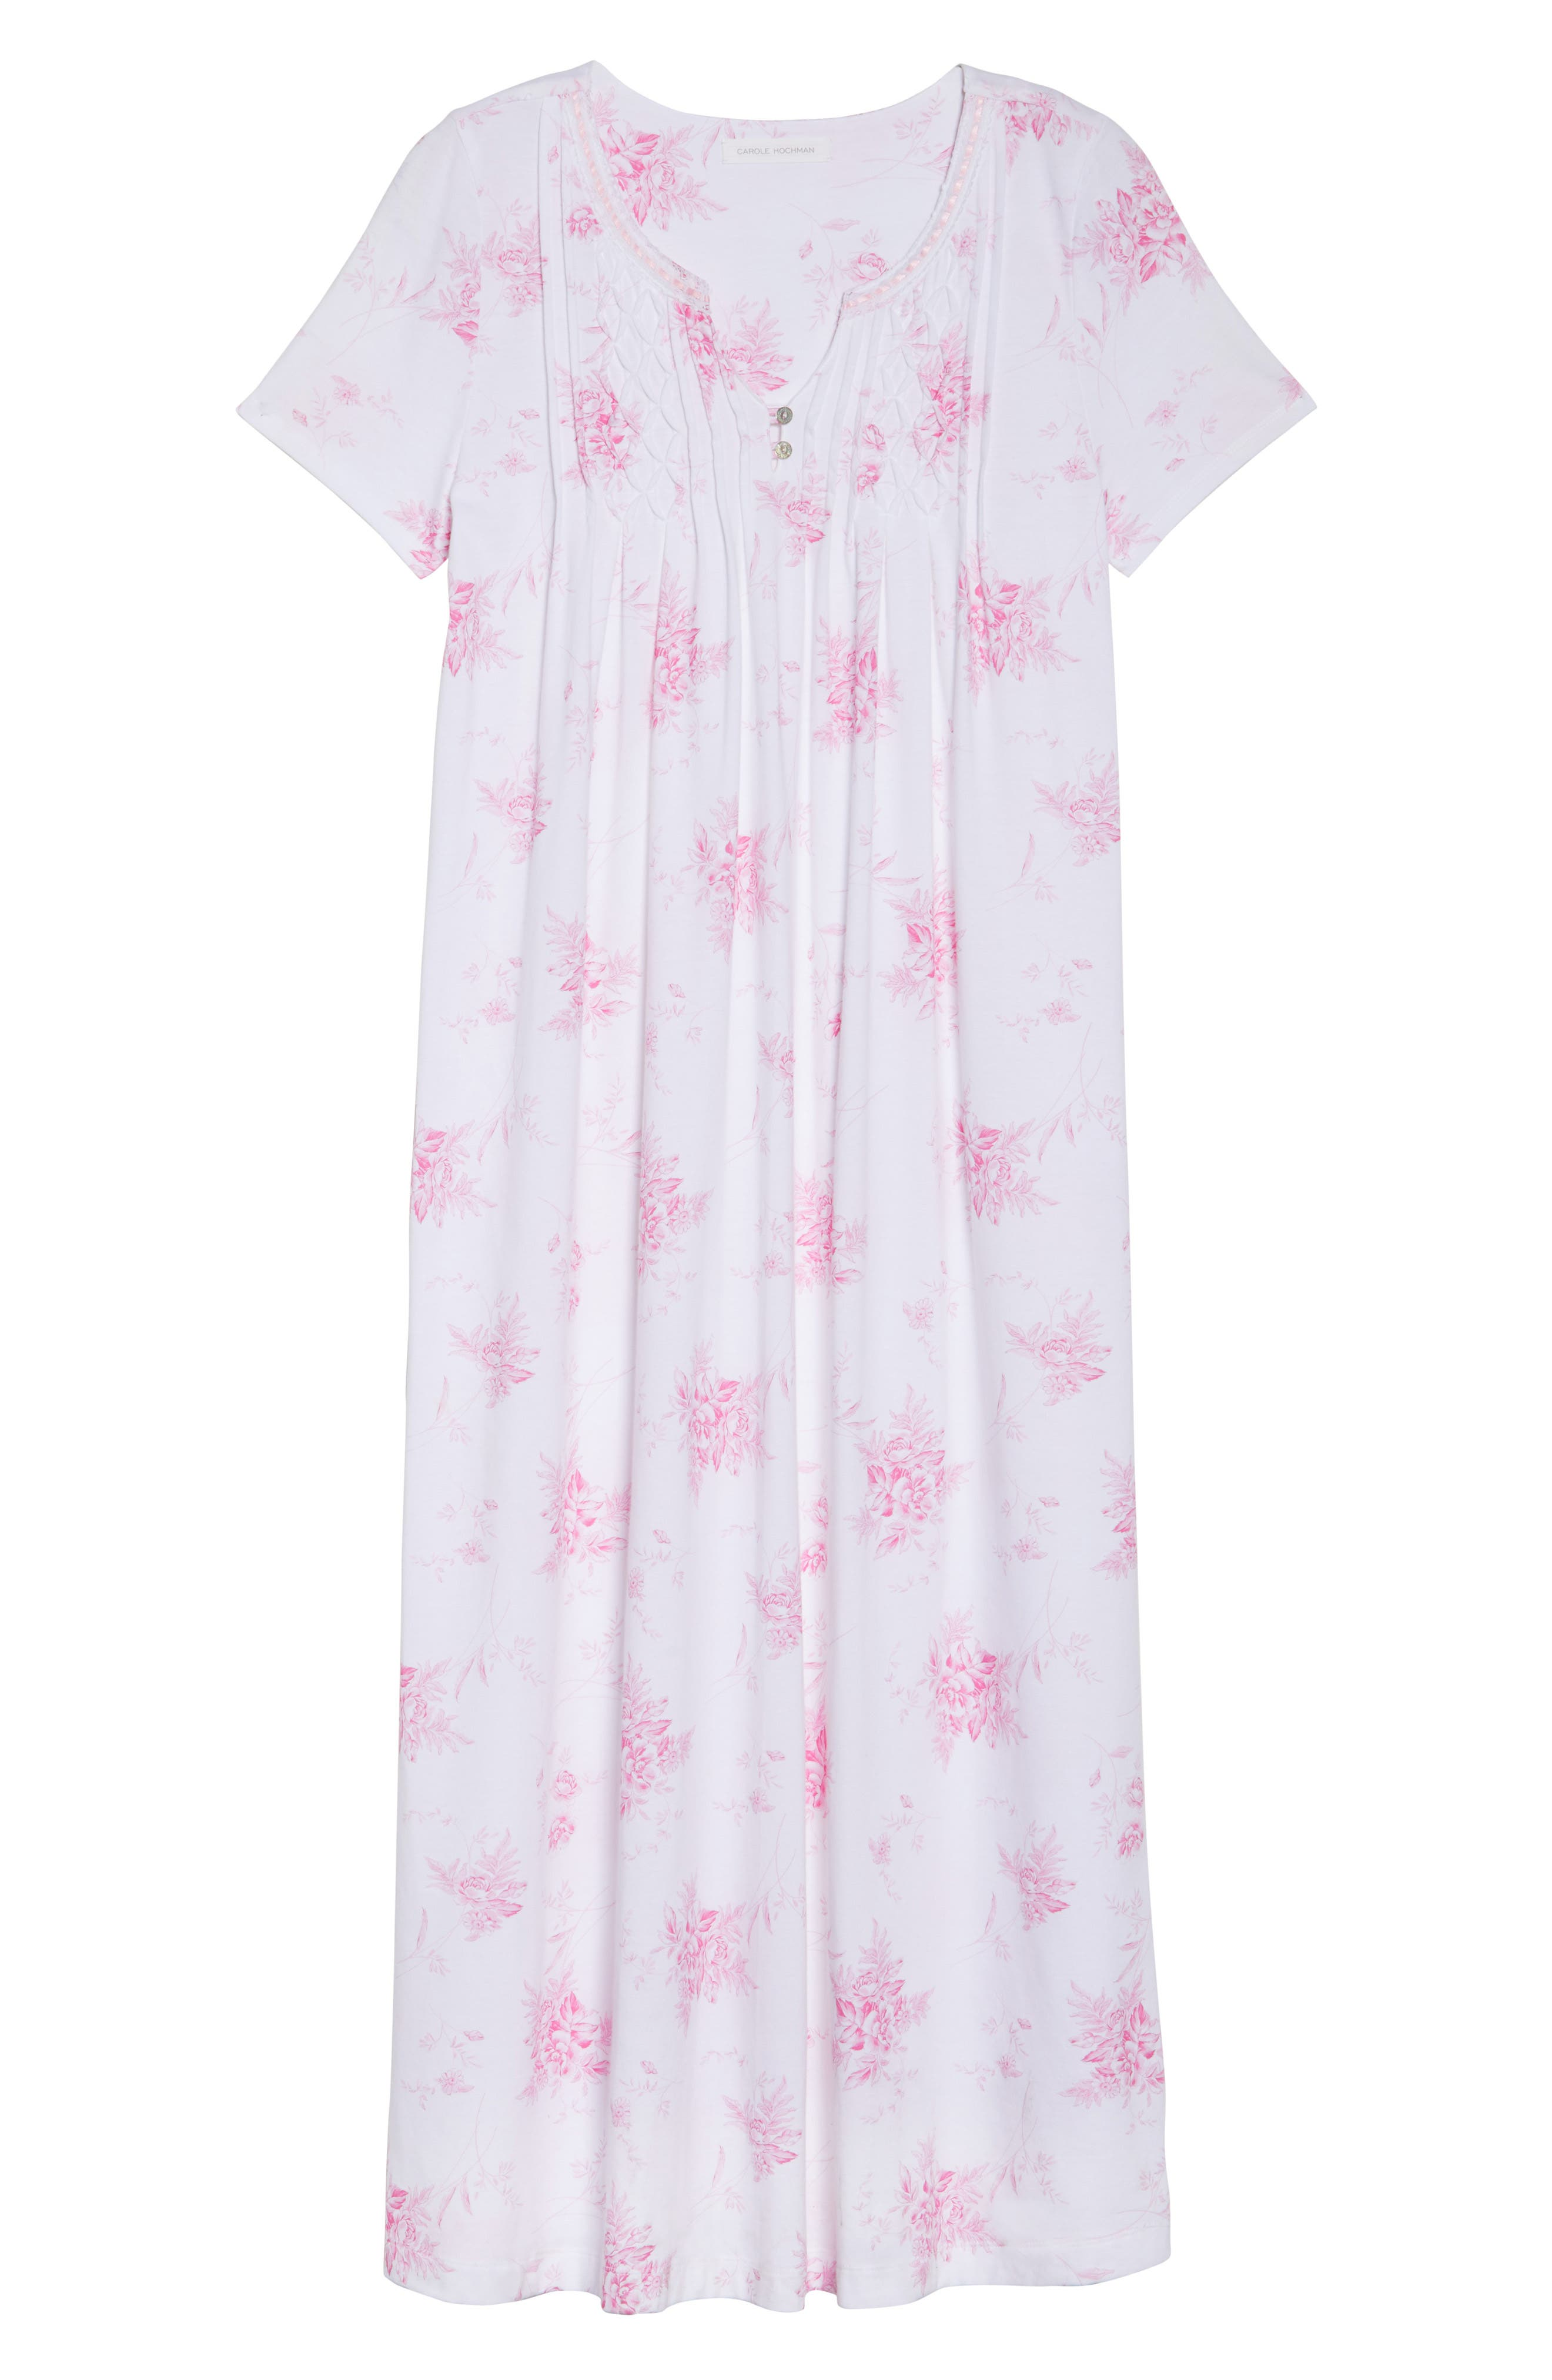 Cotton Jersey Long Nightgown,                             Alternate thumbnail 6, color,                             102